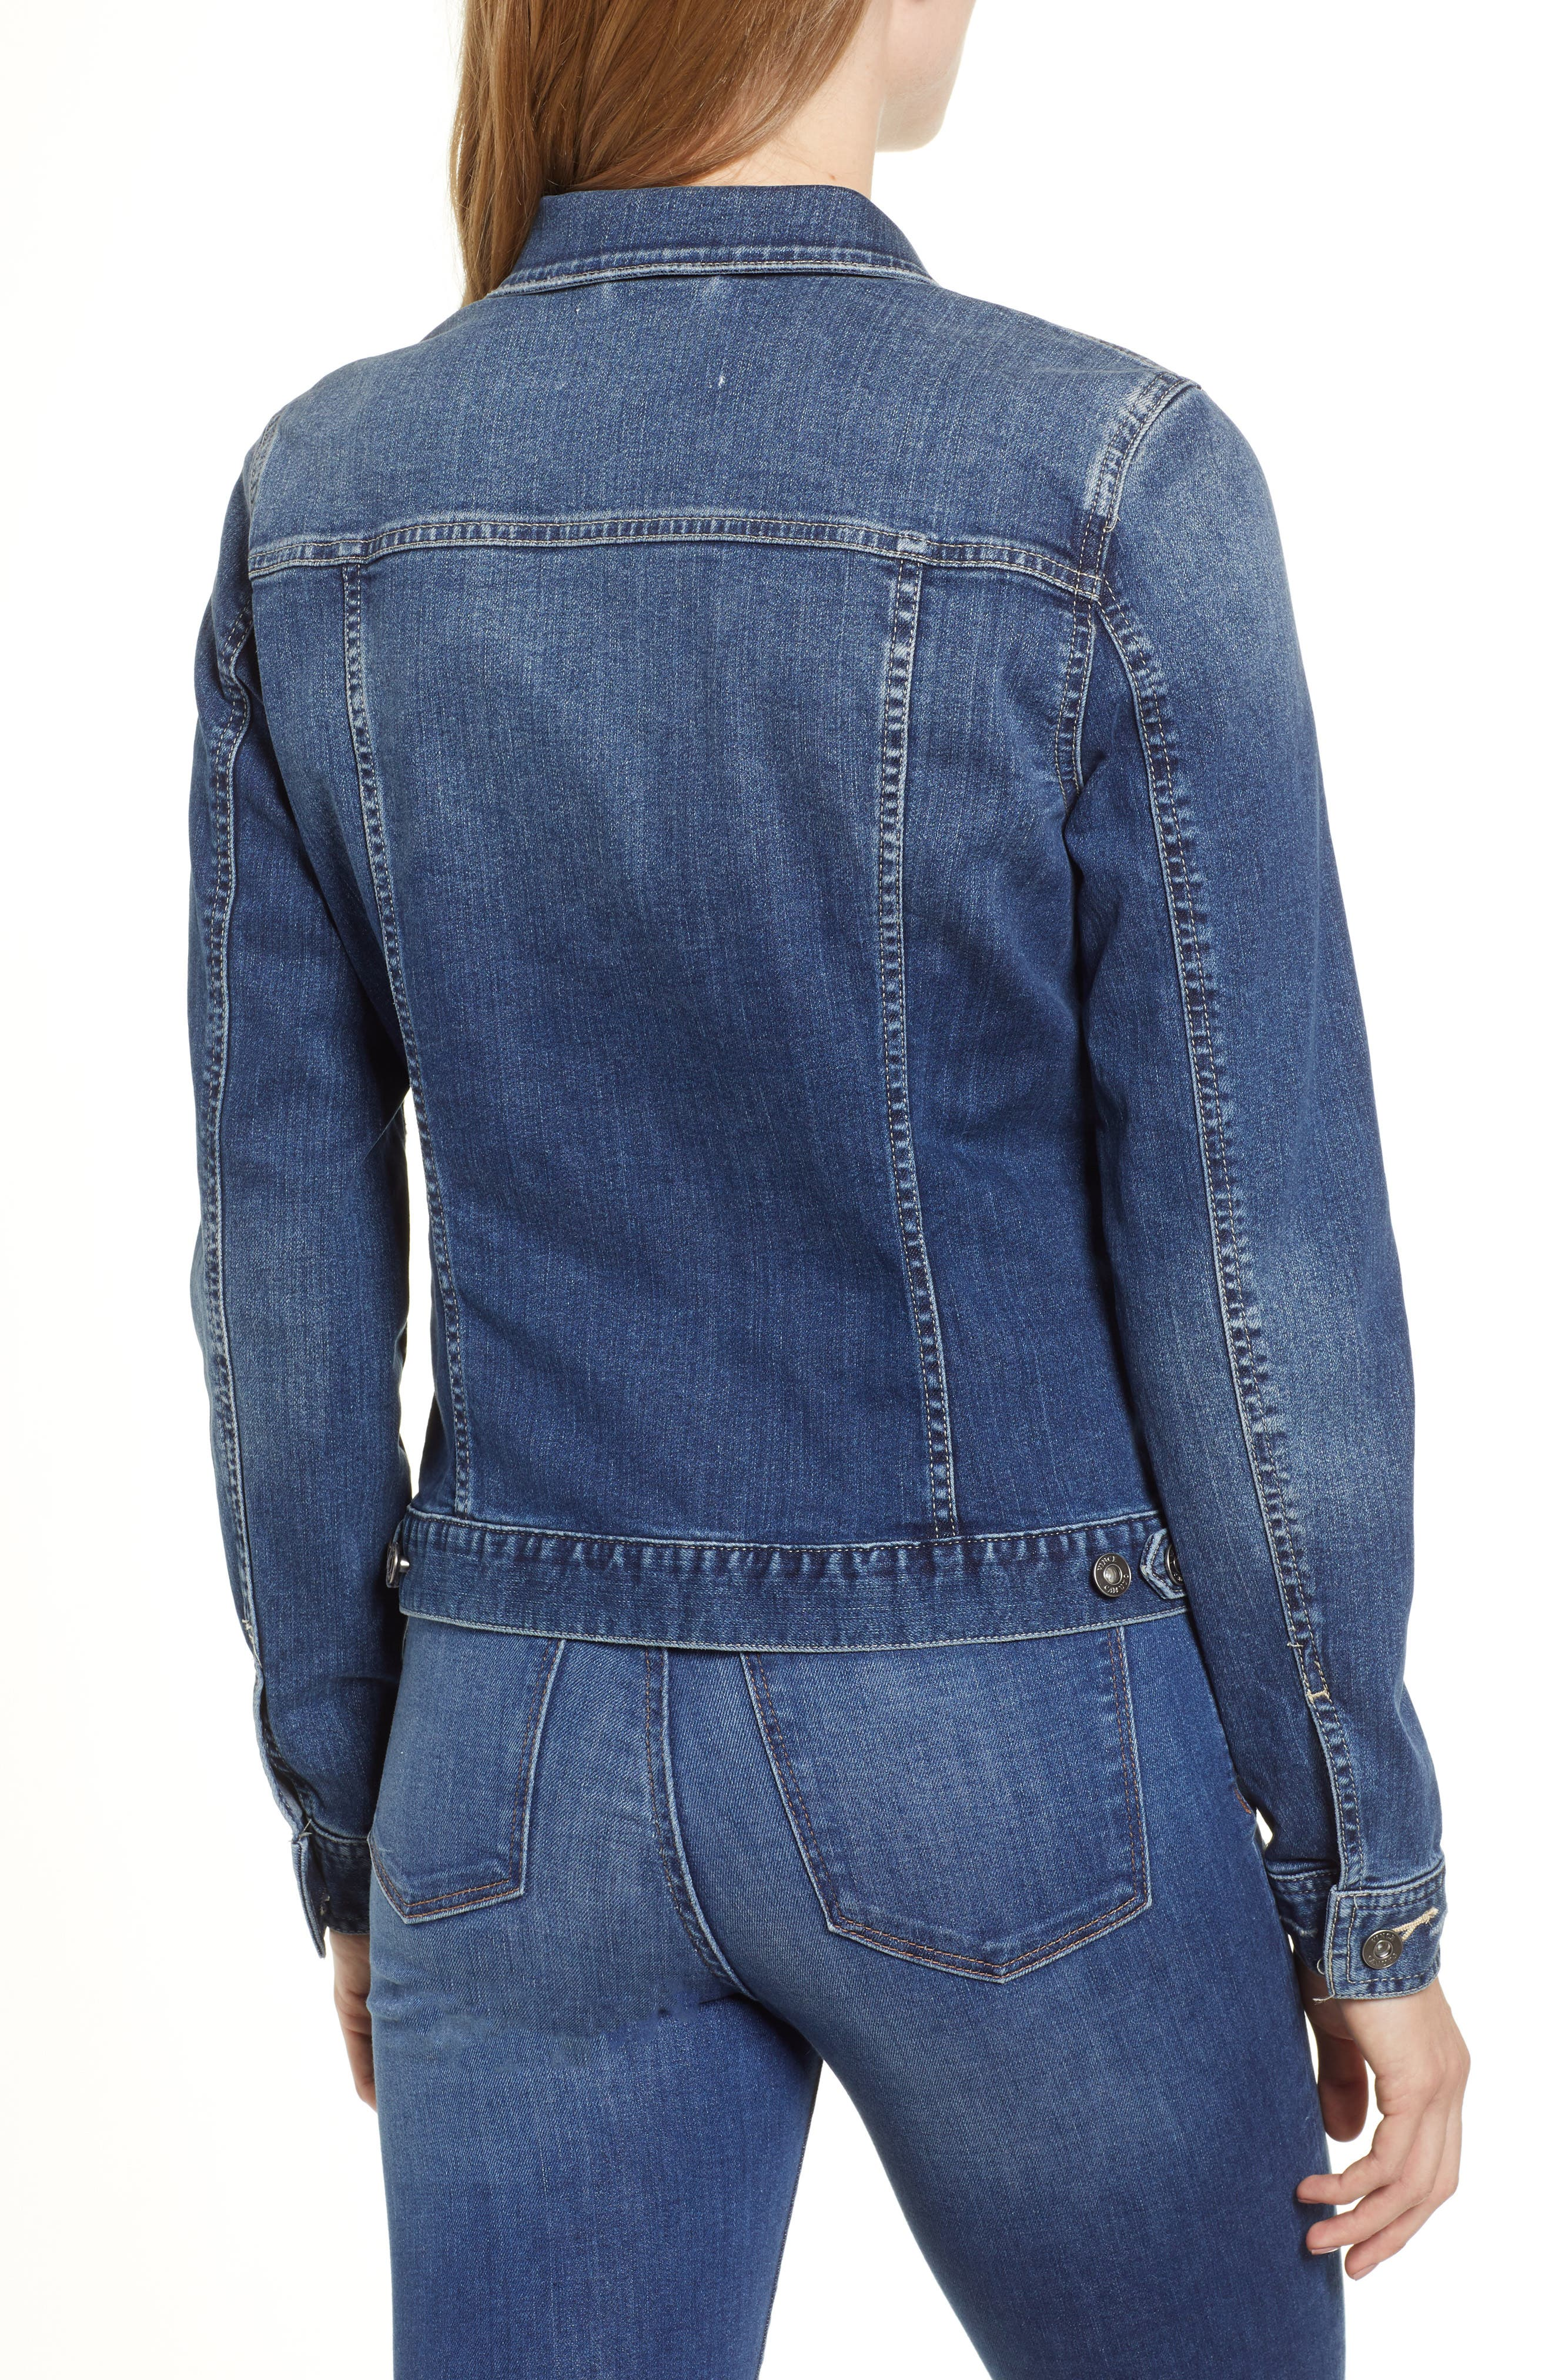 VINCE CAMUTO,                             Two by Vince Camuto Jean Jacket,                             Alternate thumbnail 3, color,                             AUTHENTIC